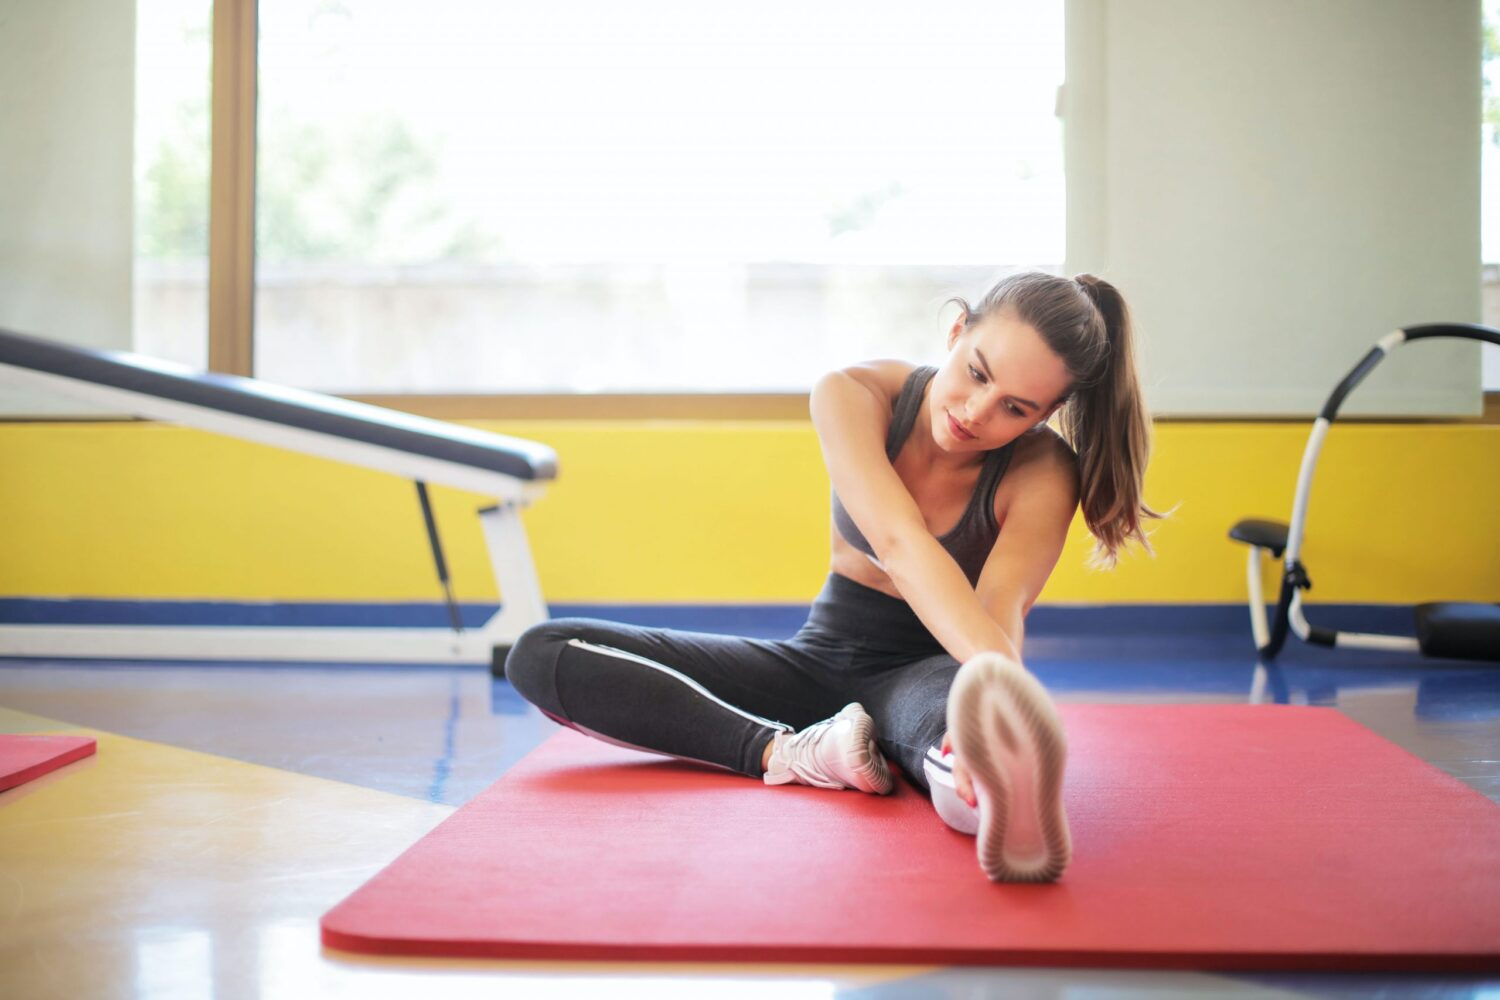 Does Yoga Really Build Muscle and Help in Losing Fat?